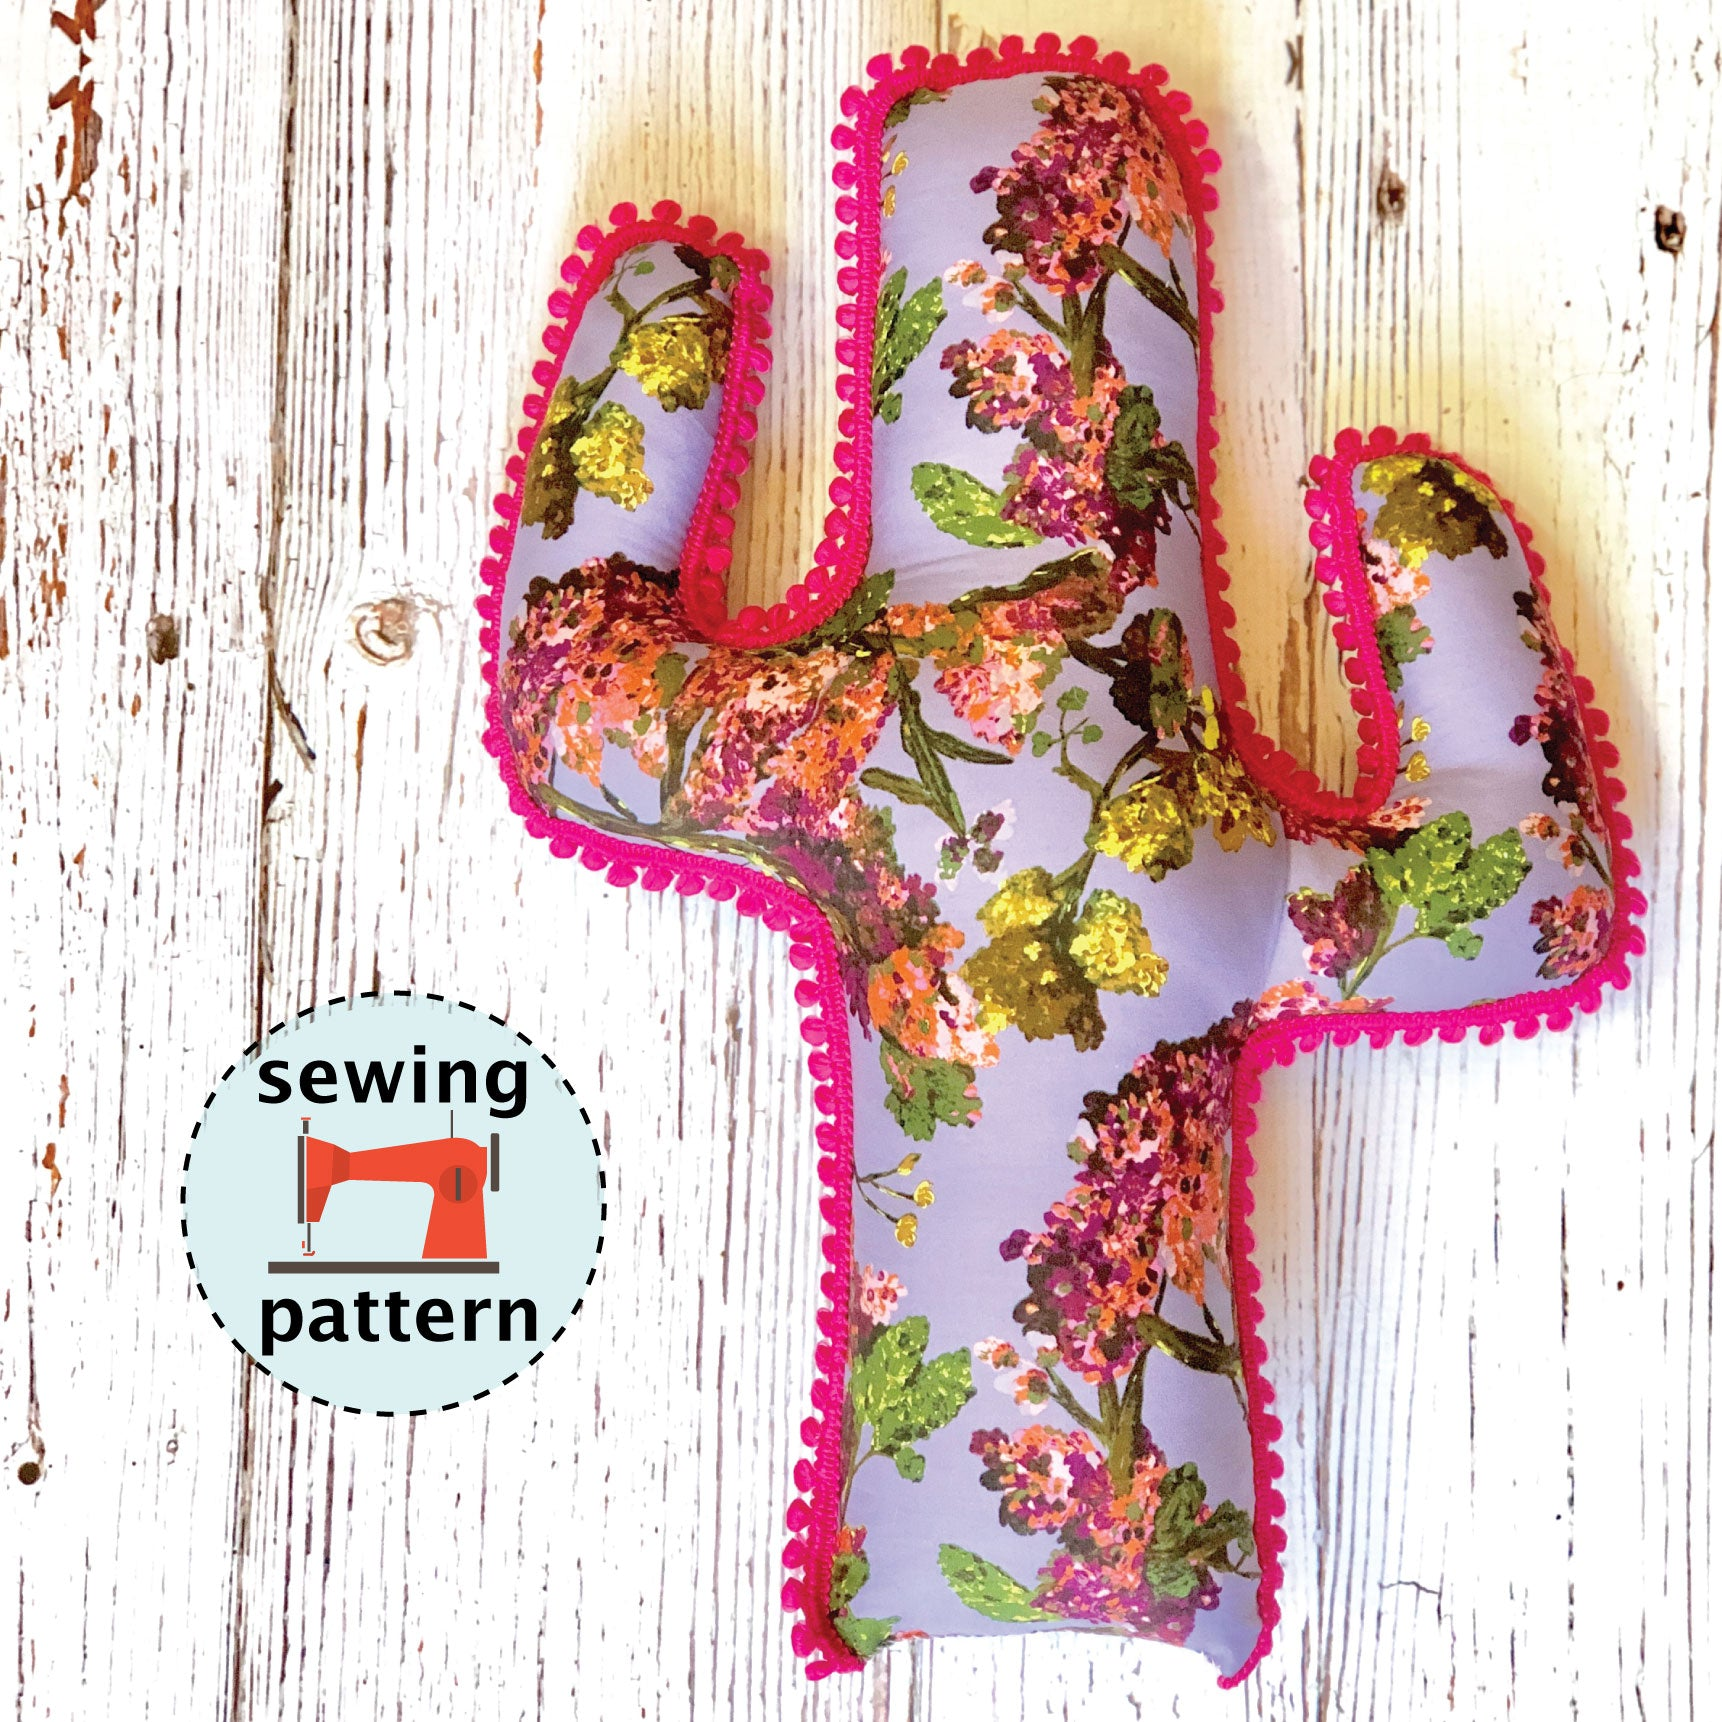 Cactus Cuddler Sewing Pattern - Sewing Instructions and Pattern - Stuffed Cactus - 4 sizes Plushy - PDF Download